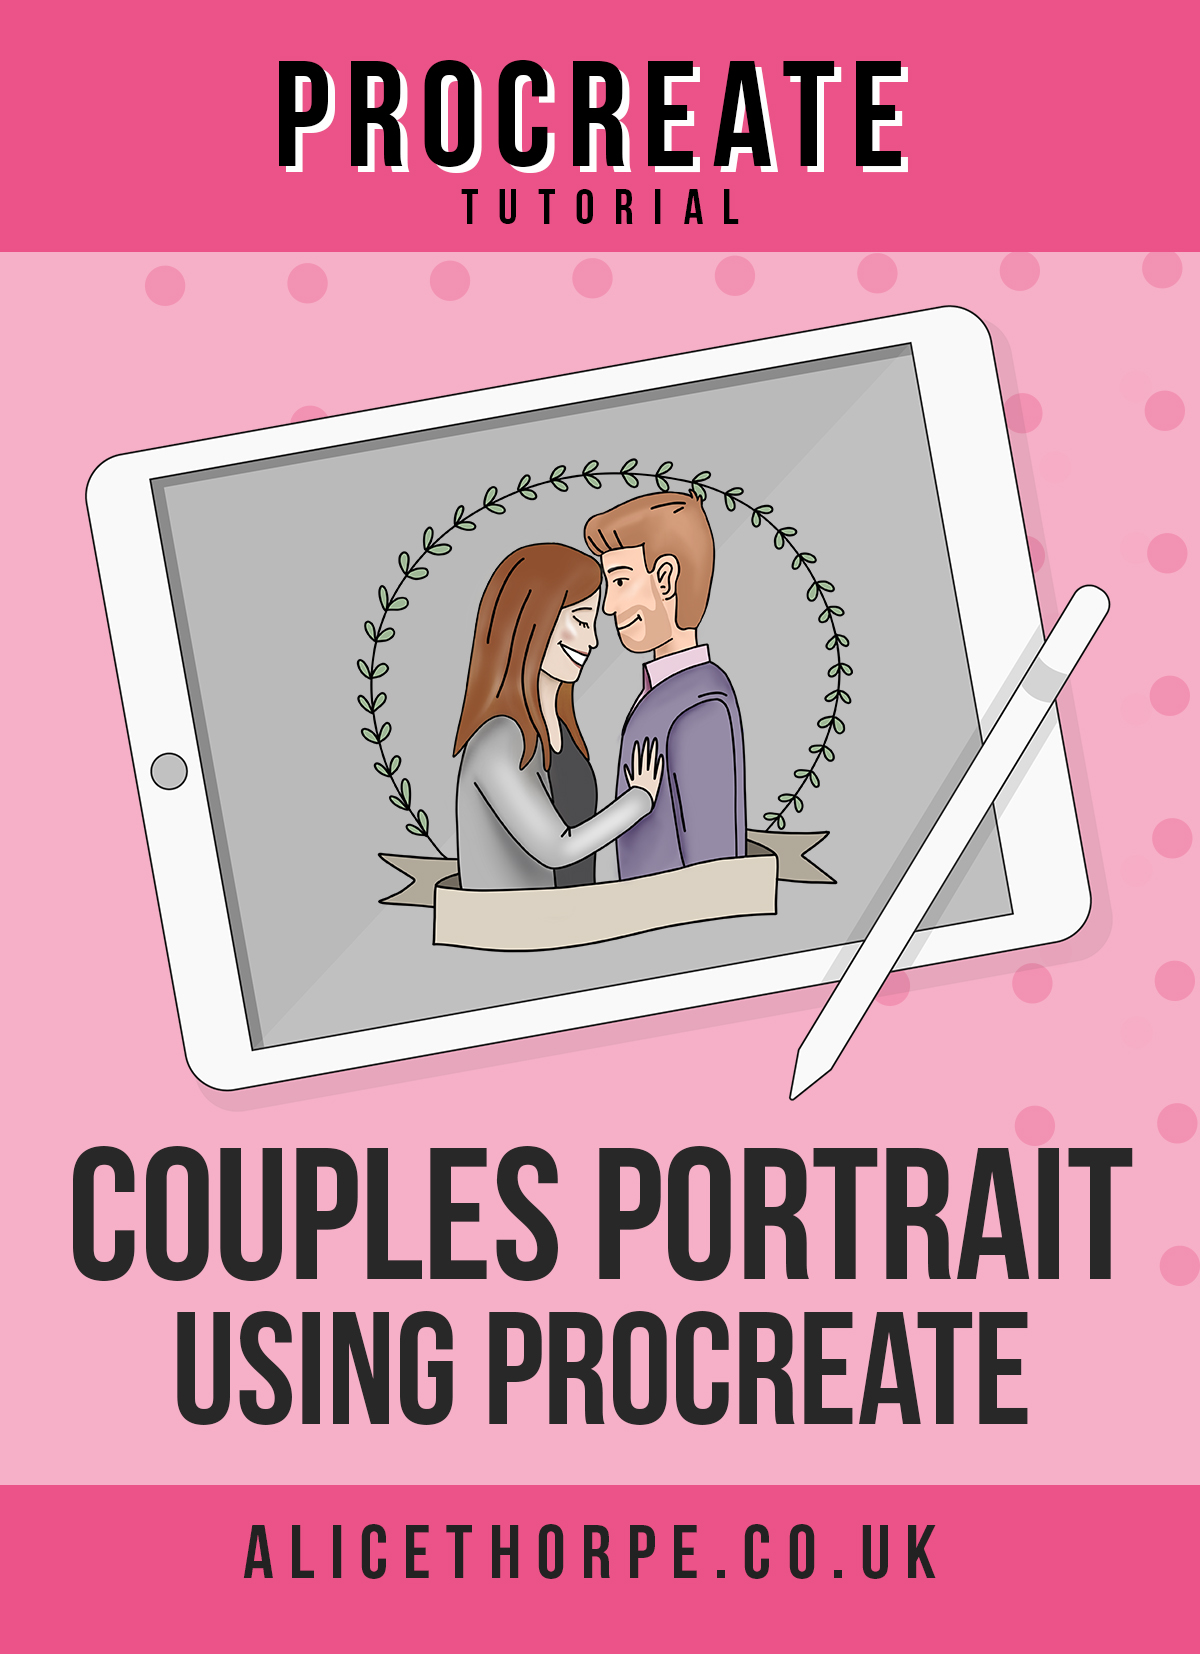 Free Procreate tutorial to create cartoon couples portrait by Alice Thorpe